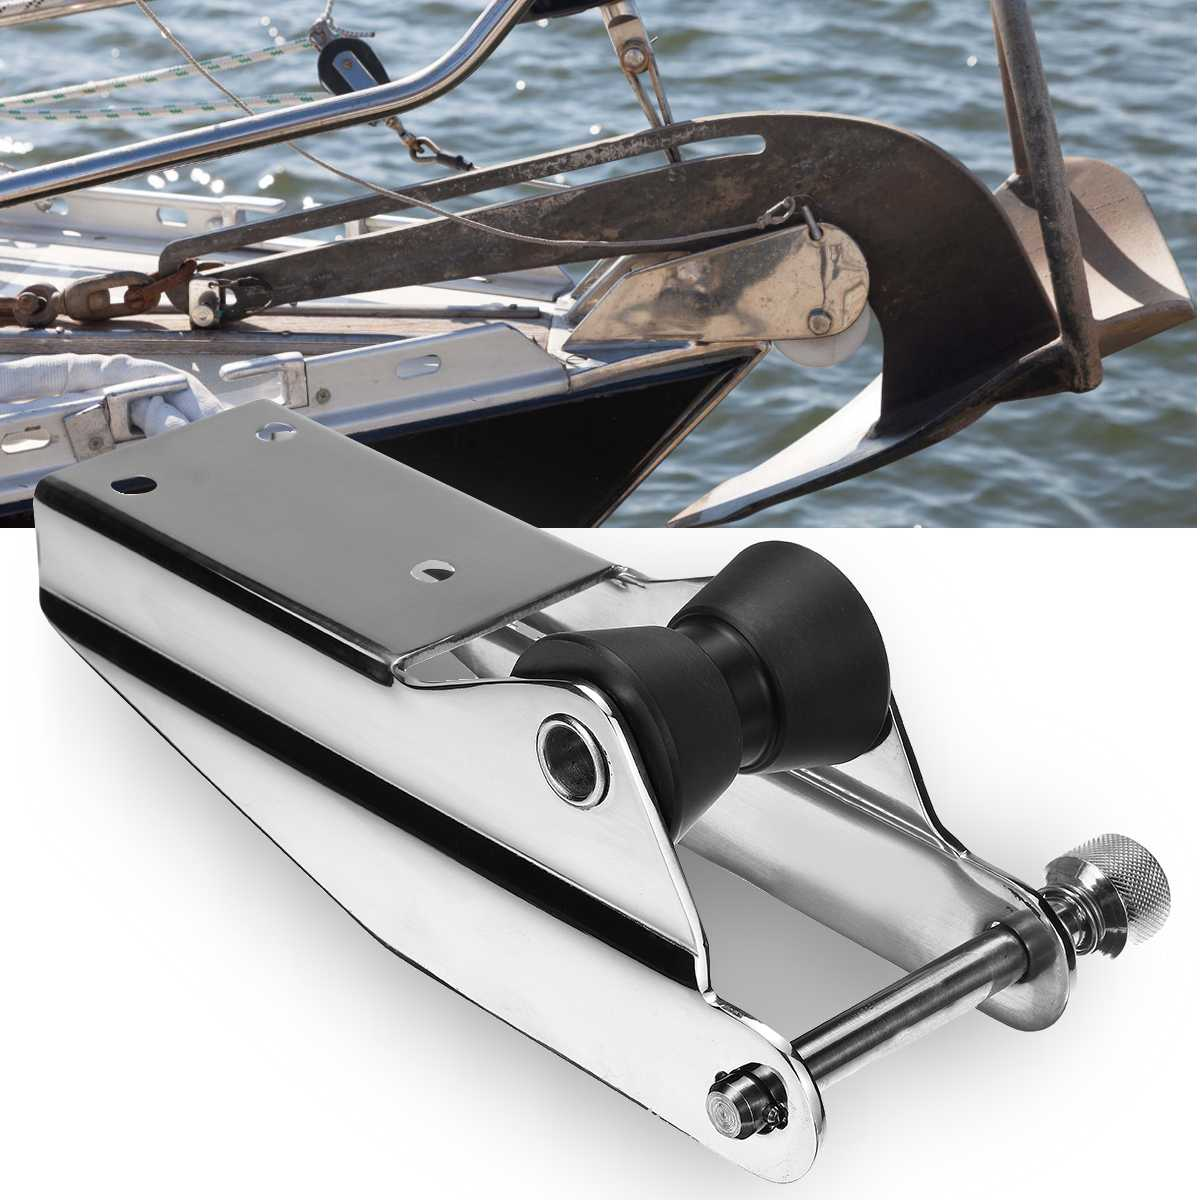 316 Stainless Steel Heavy   Bow Anchor Roller For Fixed Marine Boat Docking Black Nylon Roller Spring Loaded Pin Prevent